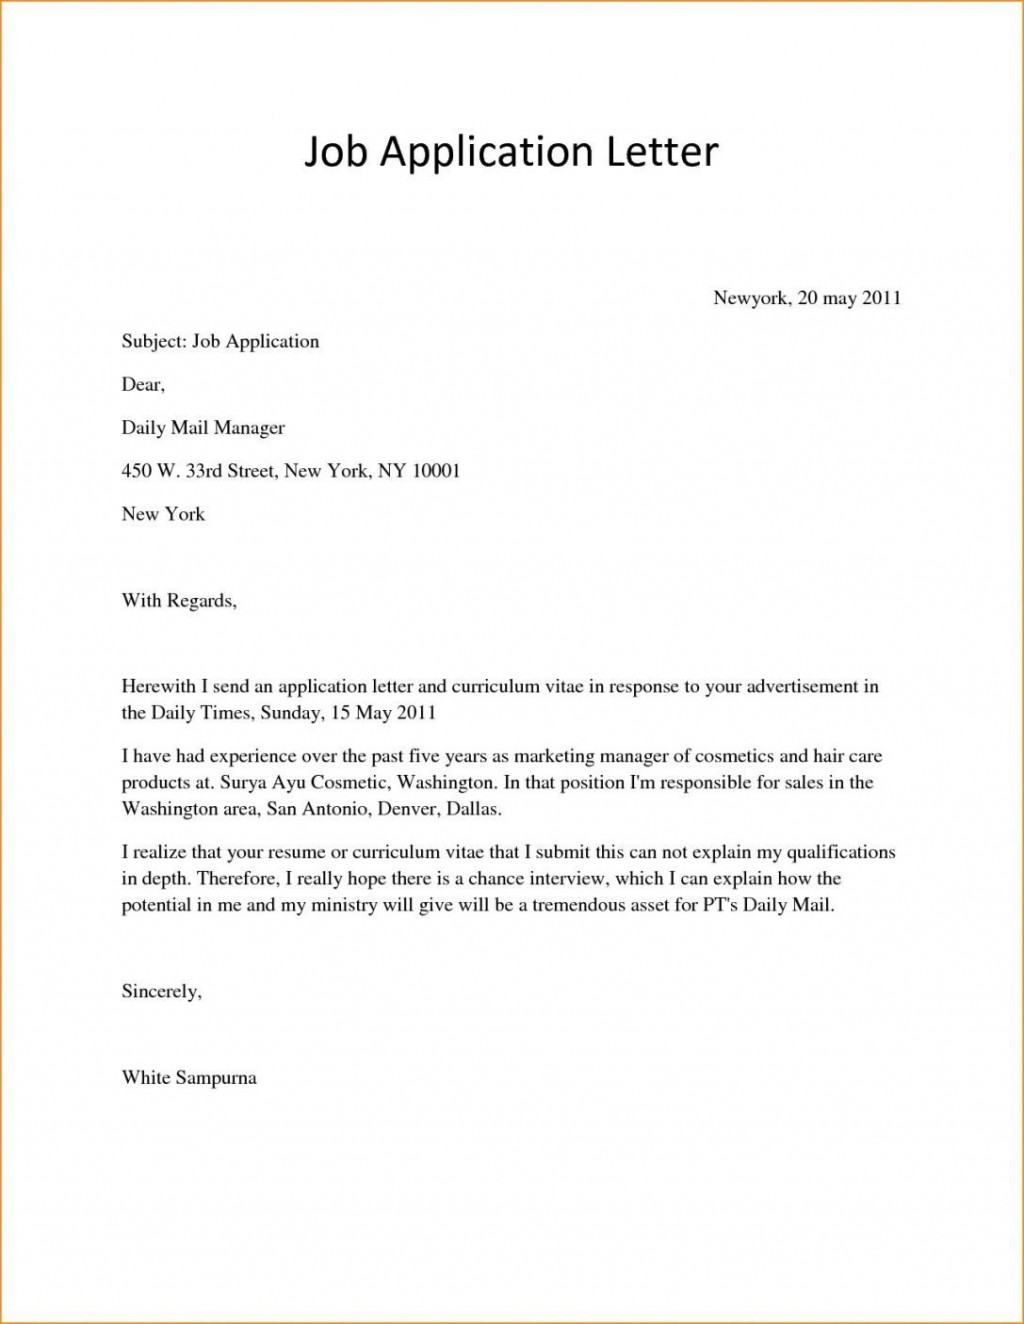 006 Awful Basic Covering Letter Template Photo  Simple Application Job Sample CoverLarge